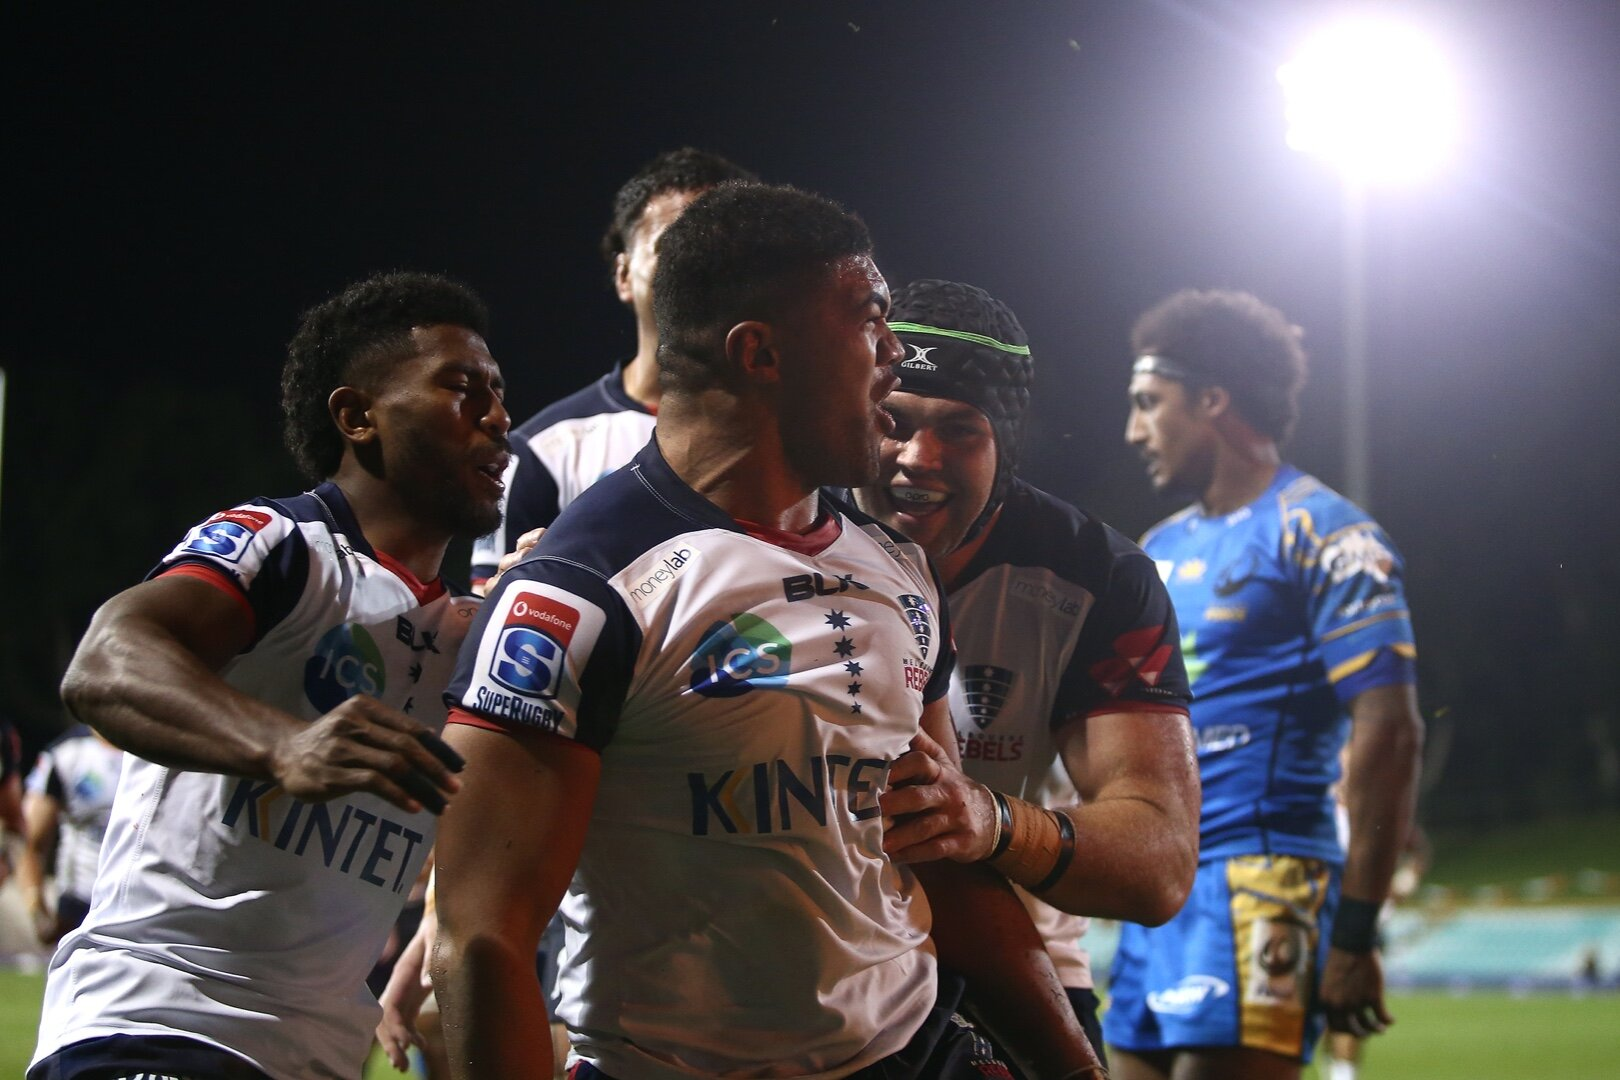 Rebels see off Western Force in Super Time after heated encounter